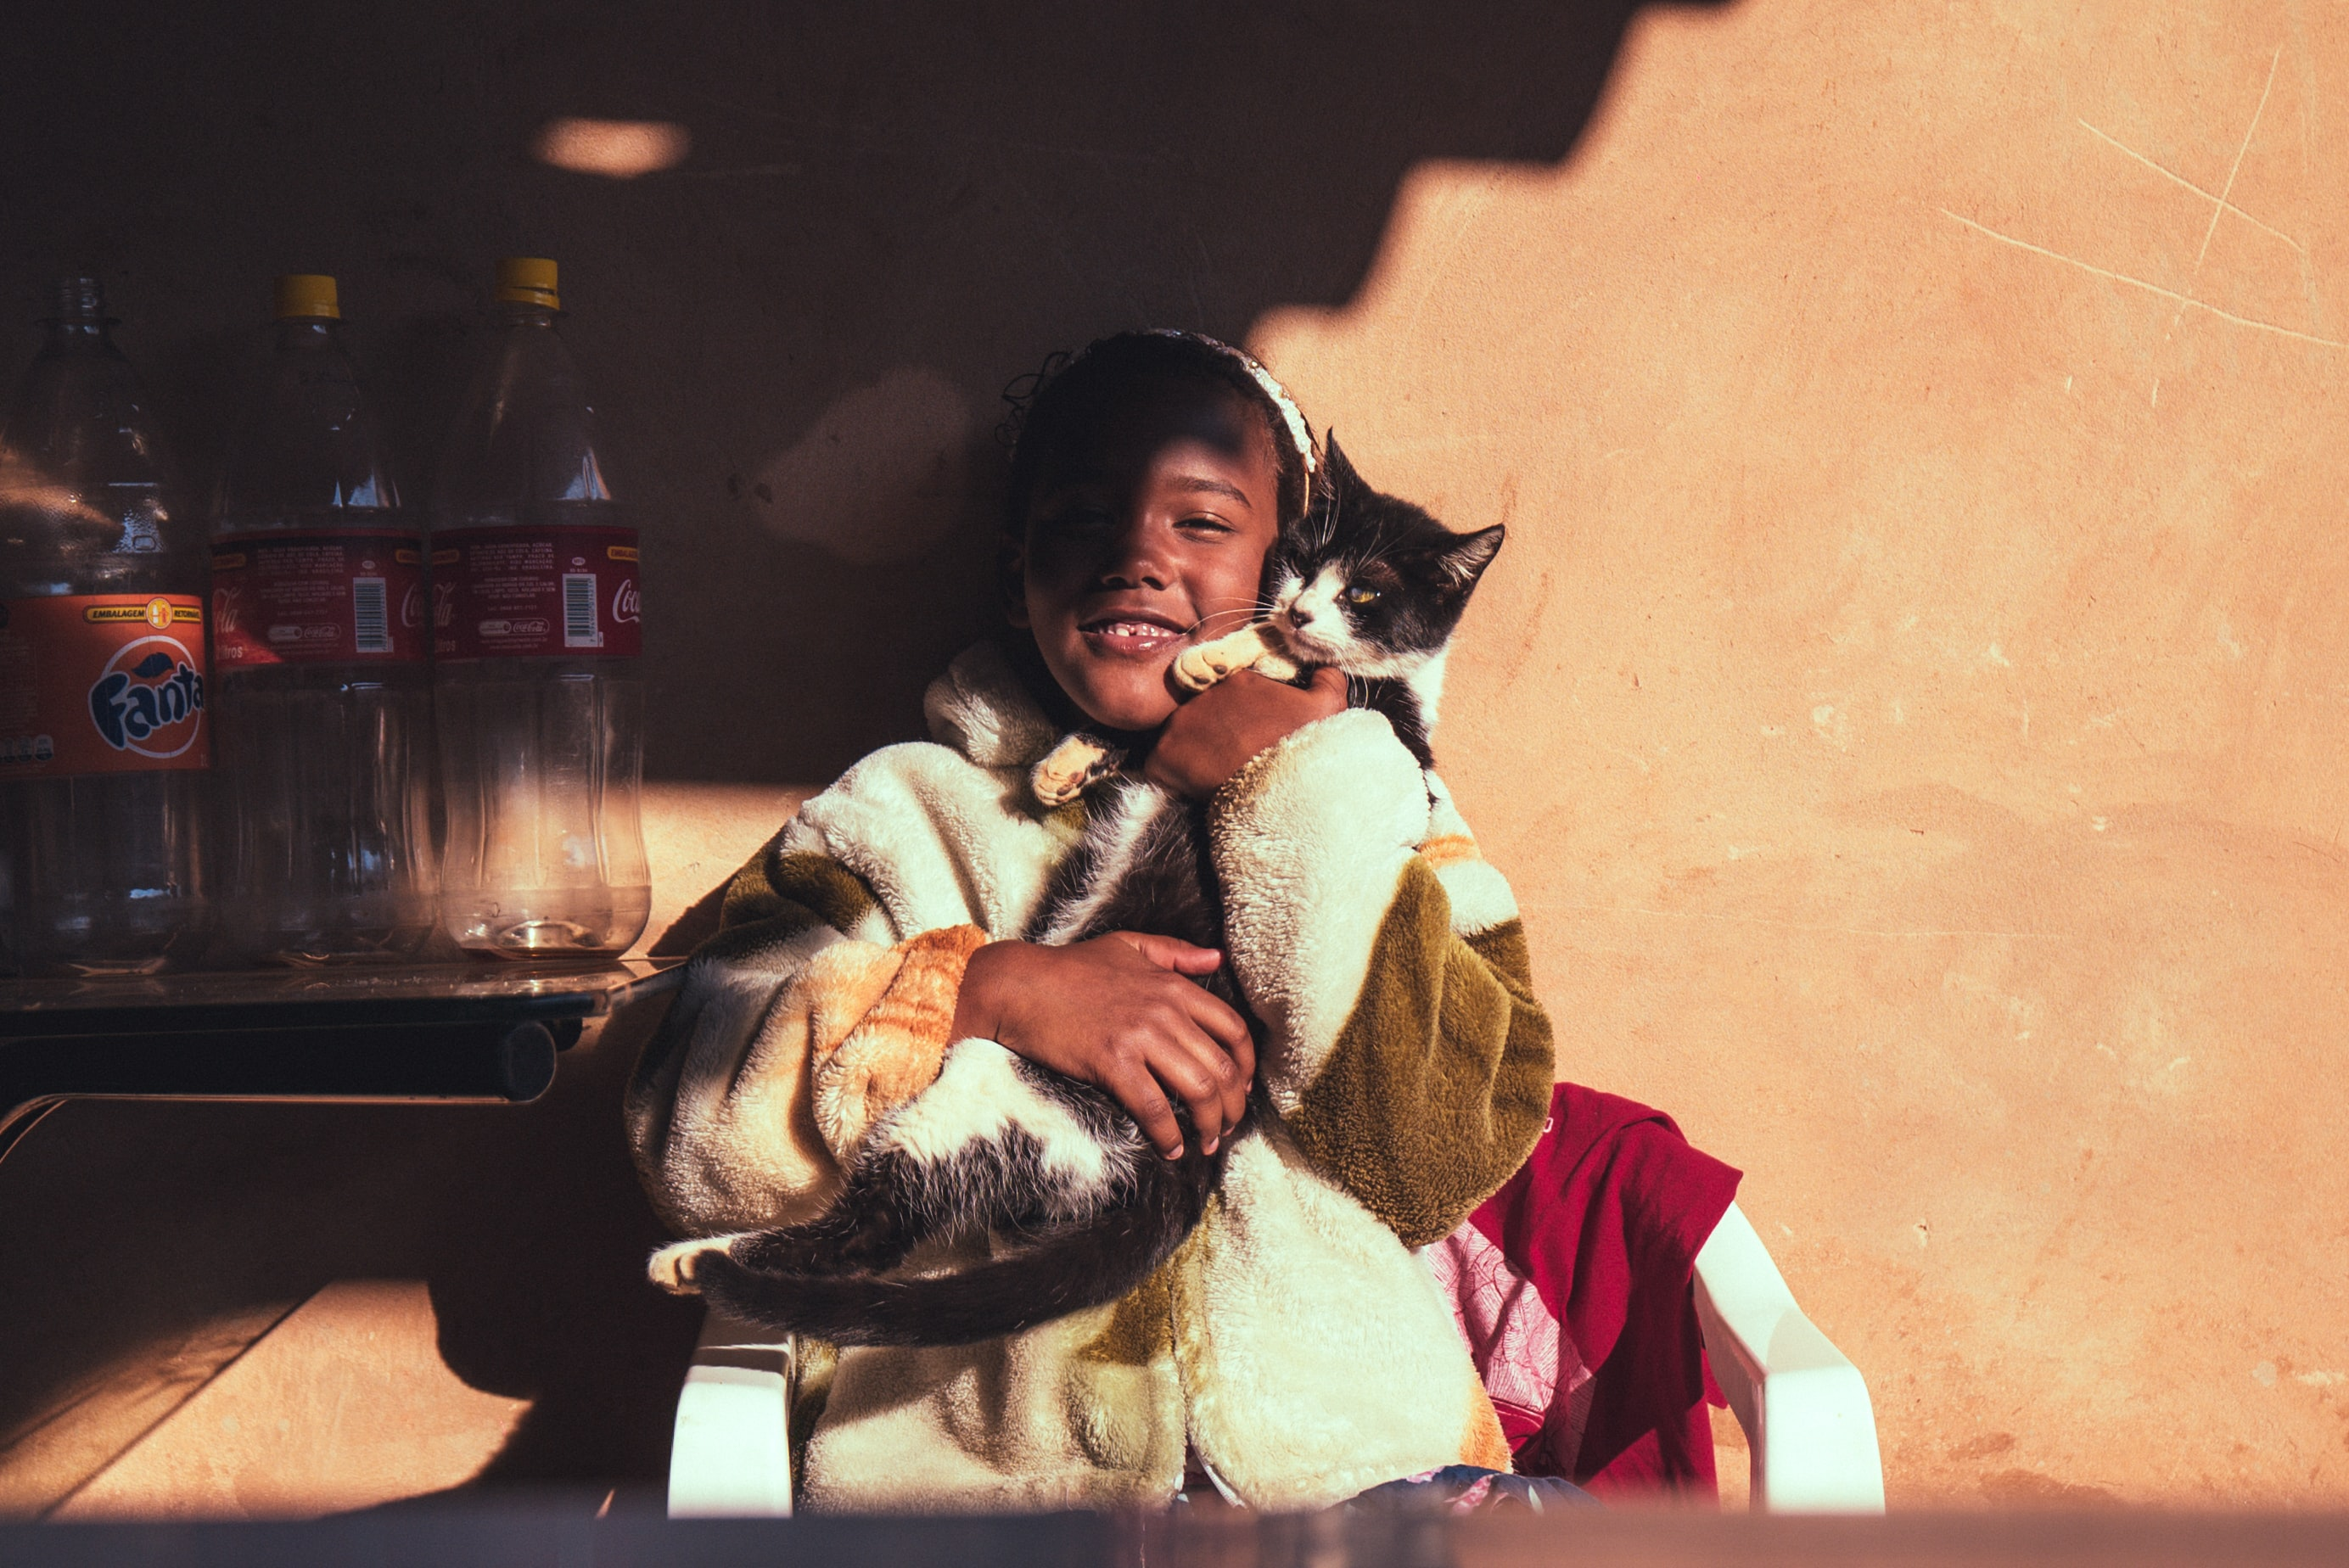 A shadow falls on a seated young girl smiling and cuddling a black and white cat